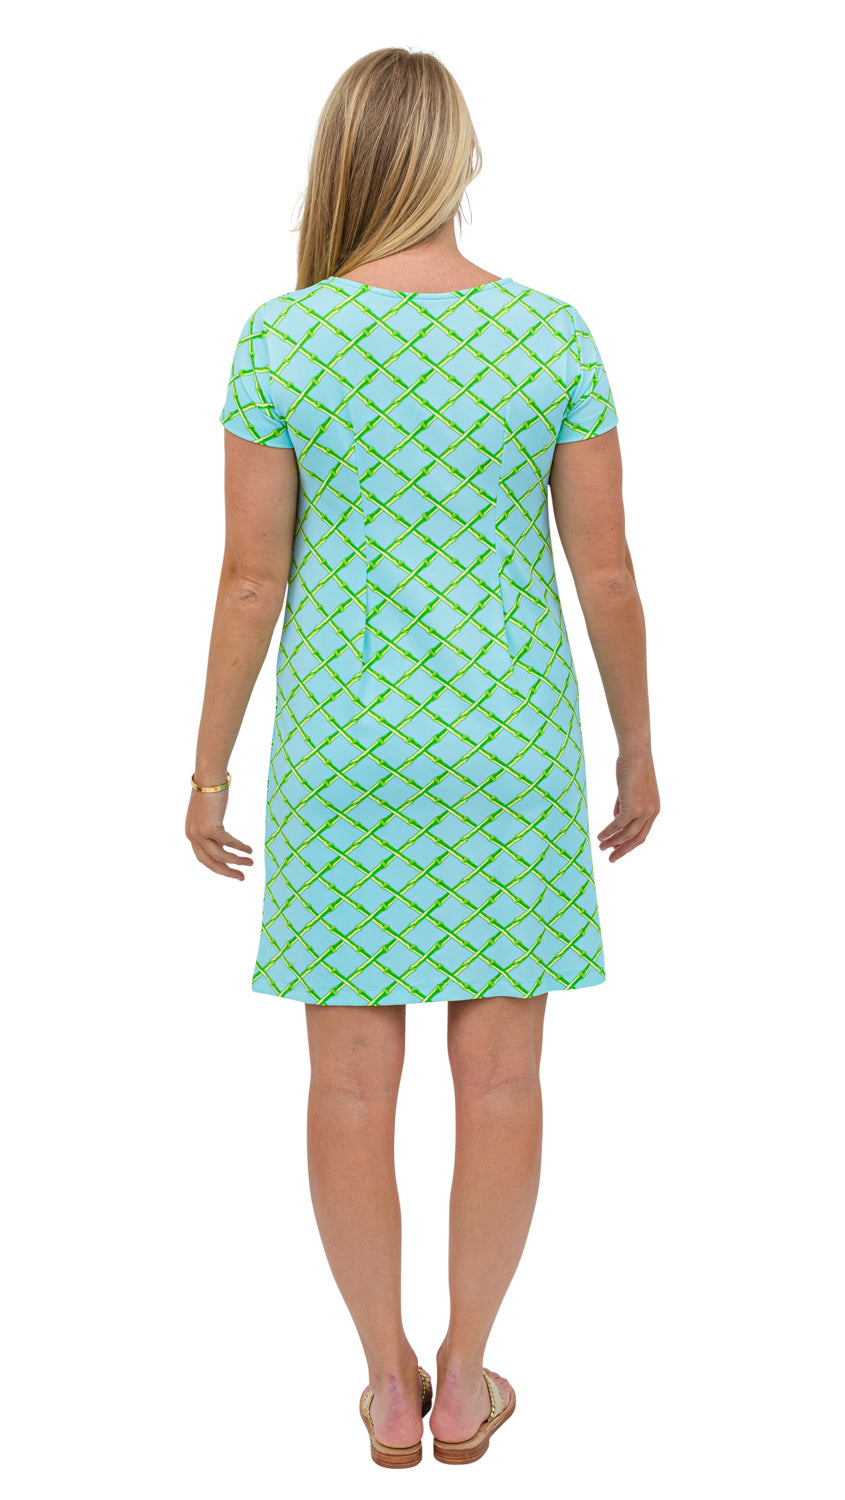 Marina Dress - Turq/Green Bamboo Lattice